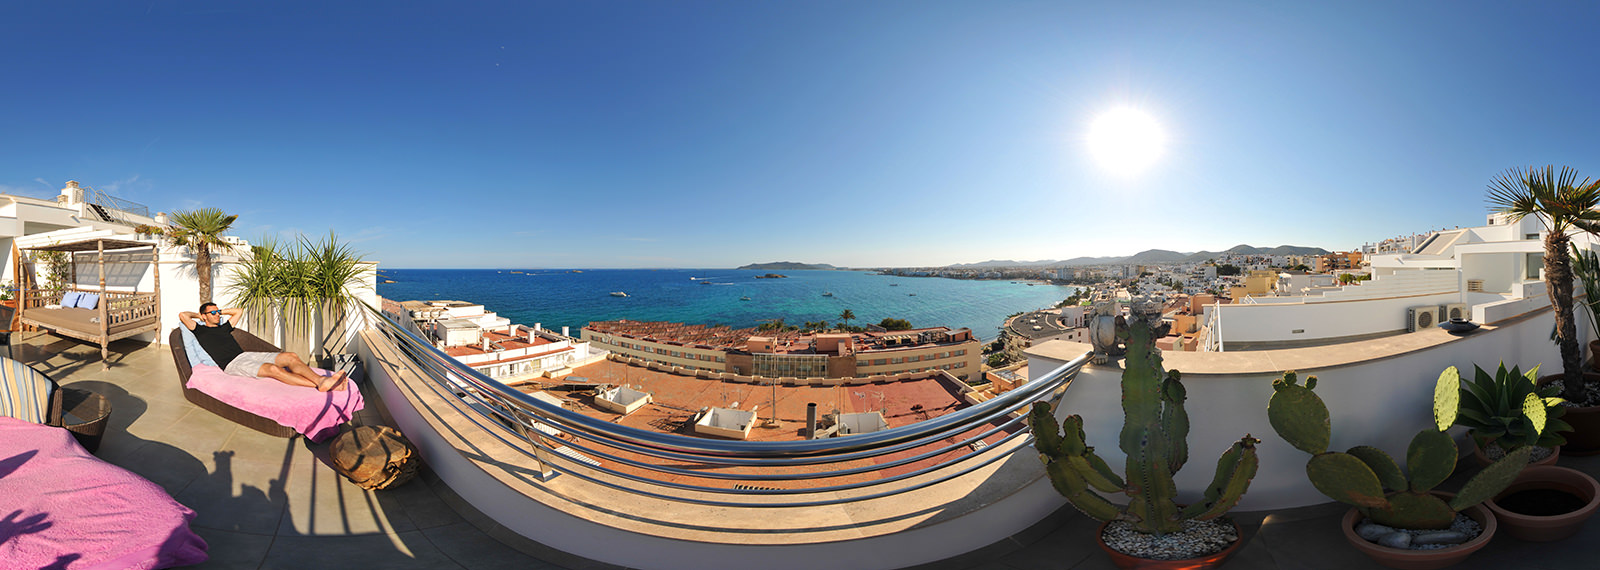 Villa Al Sabini, Ibiza - Virtual tour